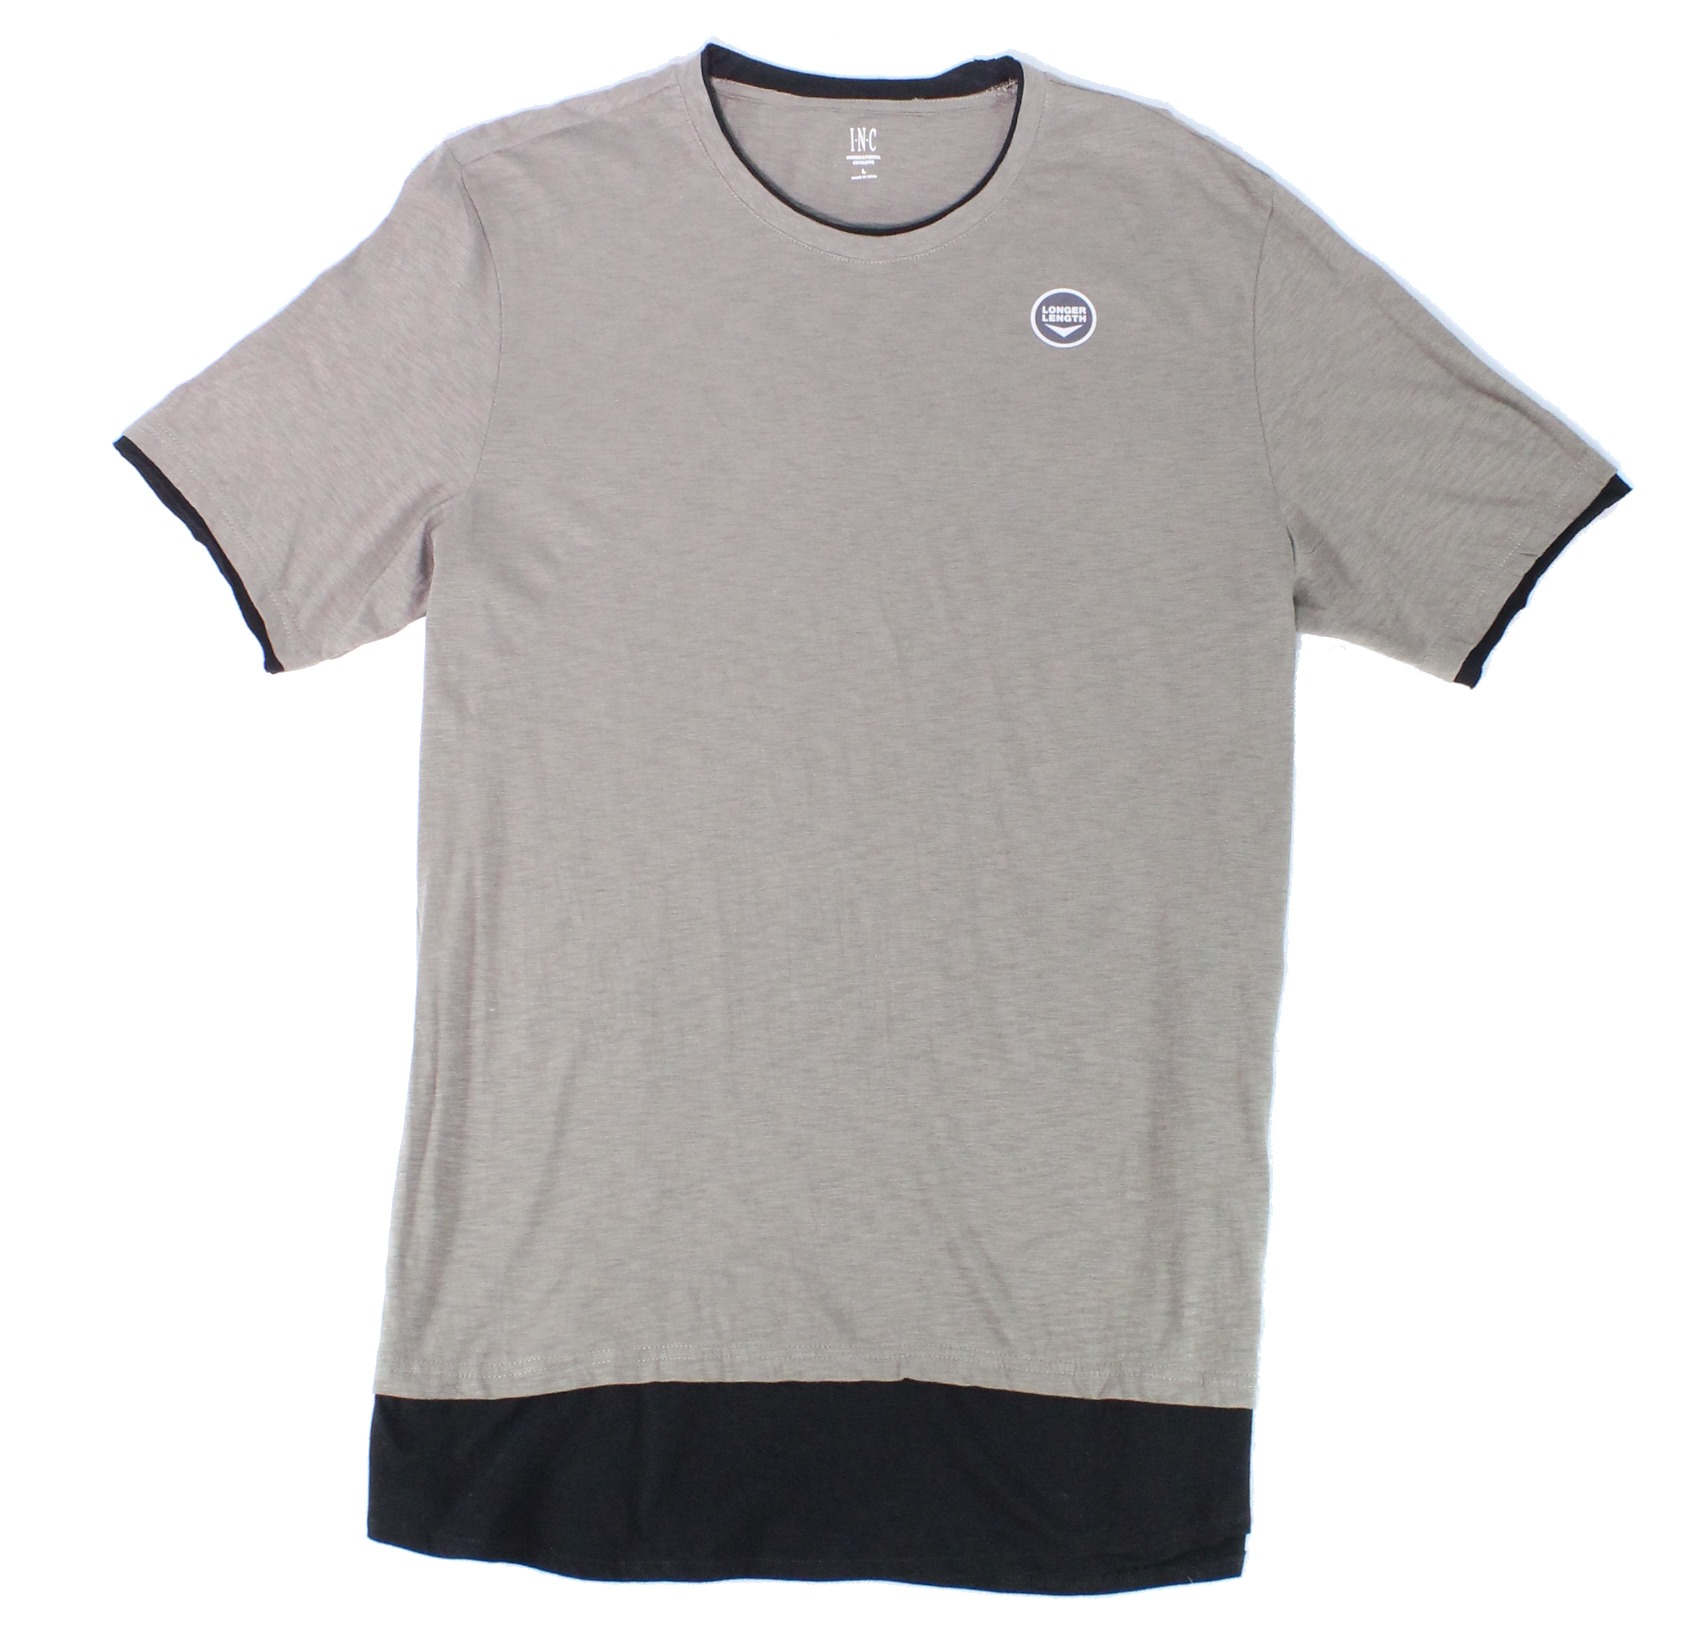 New-INC-Mens-Tee-Shirt-Taupe-Green-Black-Size-Large-L-Longer-Length-29-003